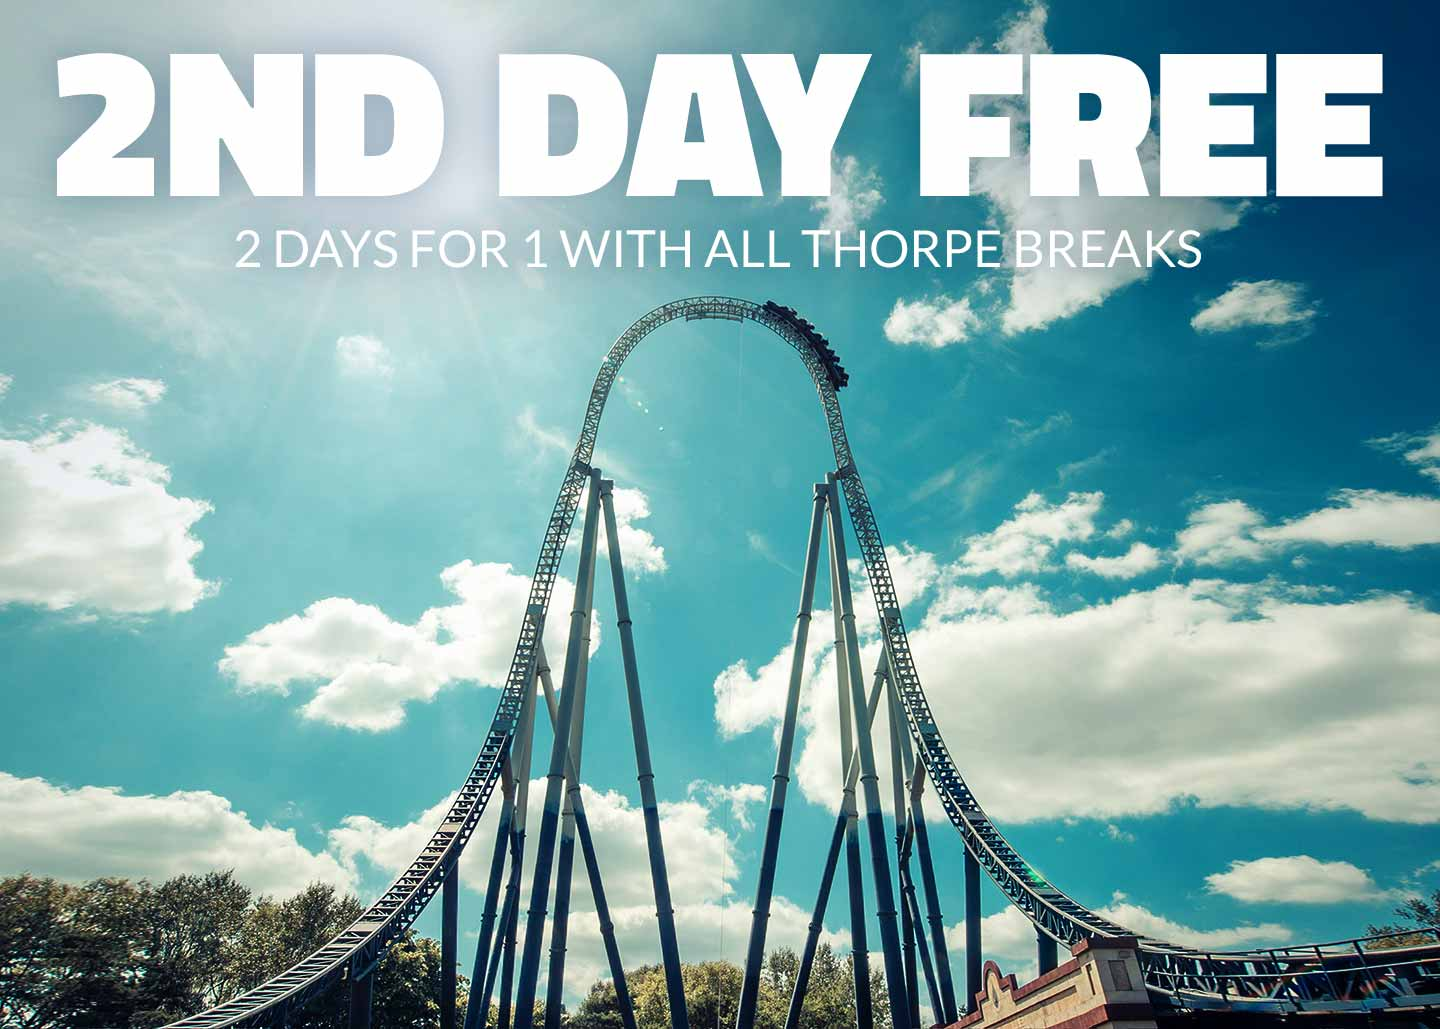 2nd day FREE entry at Thorpe Park